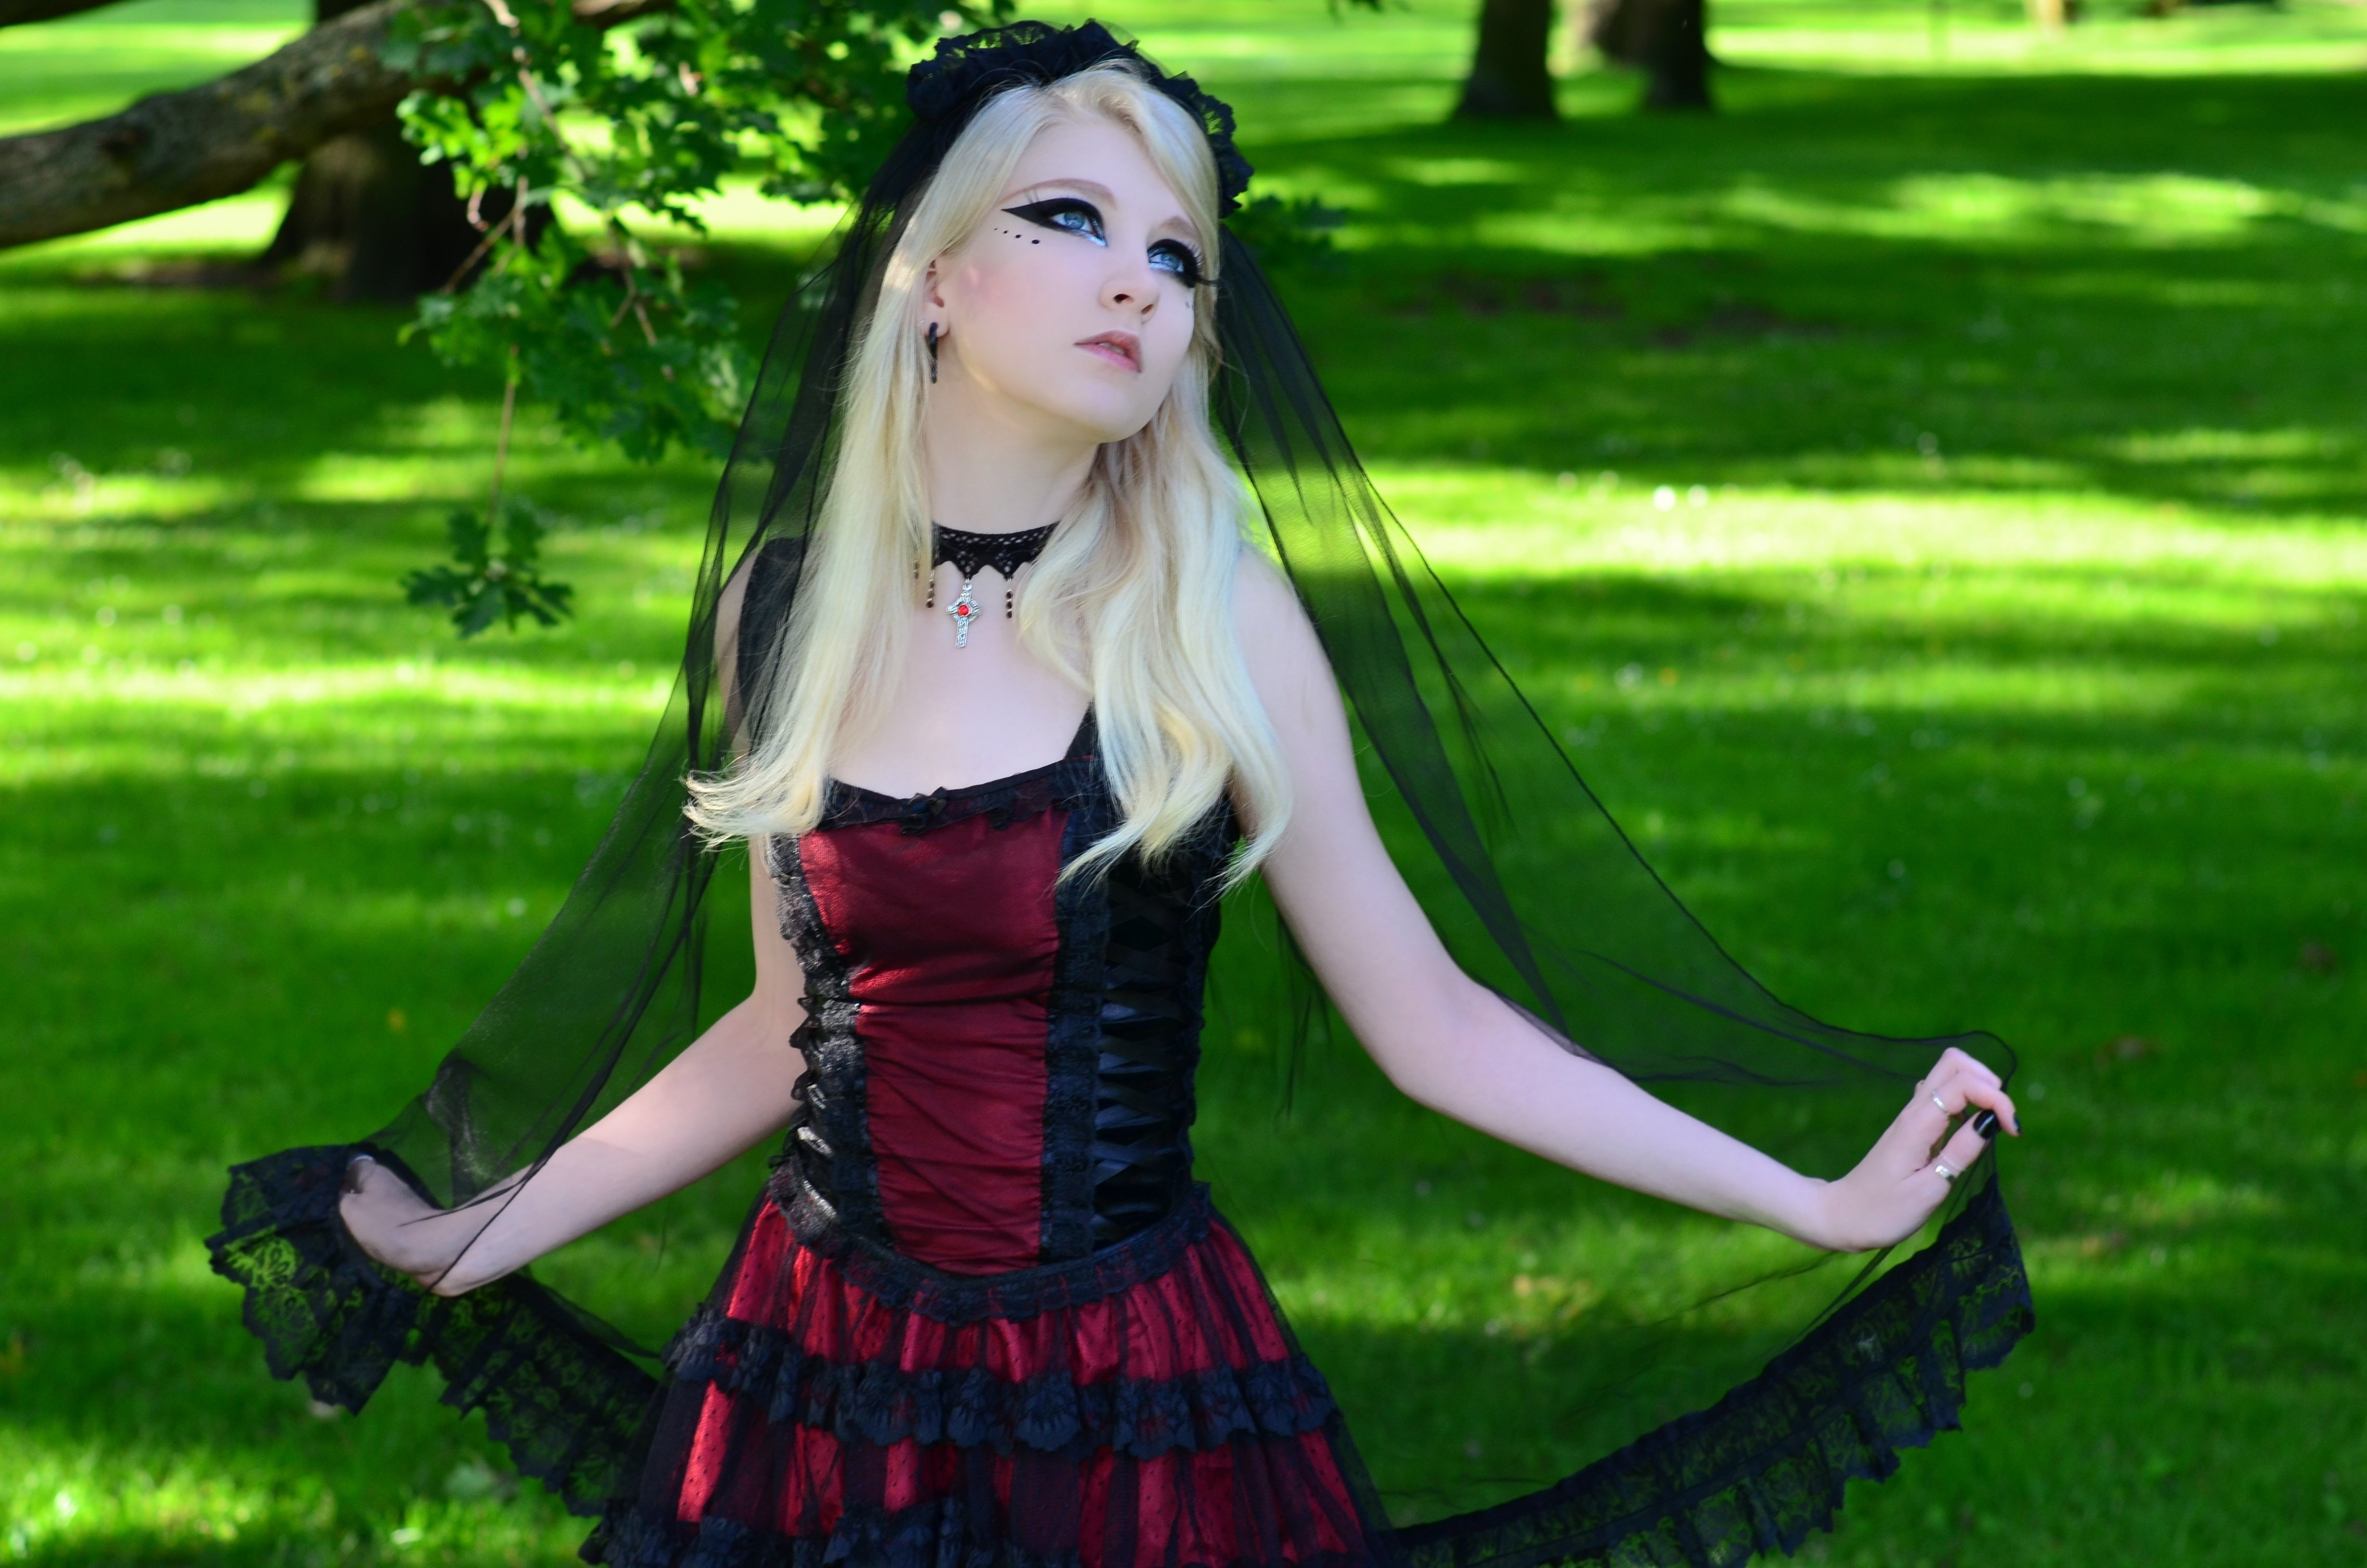 Cyber Goth Nackt. Gothic Female Images - Pixabay